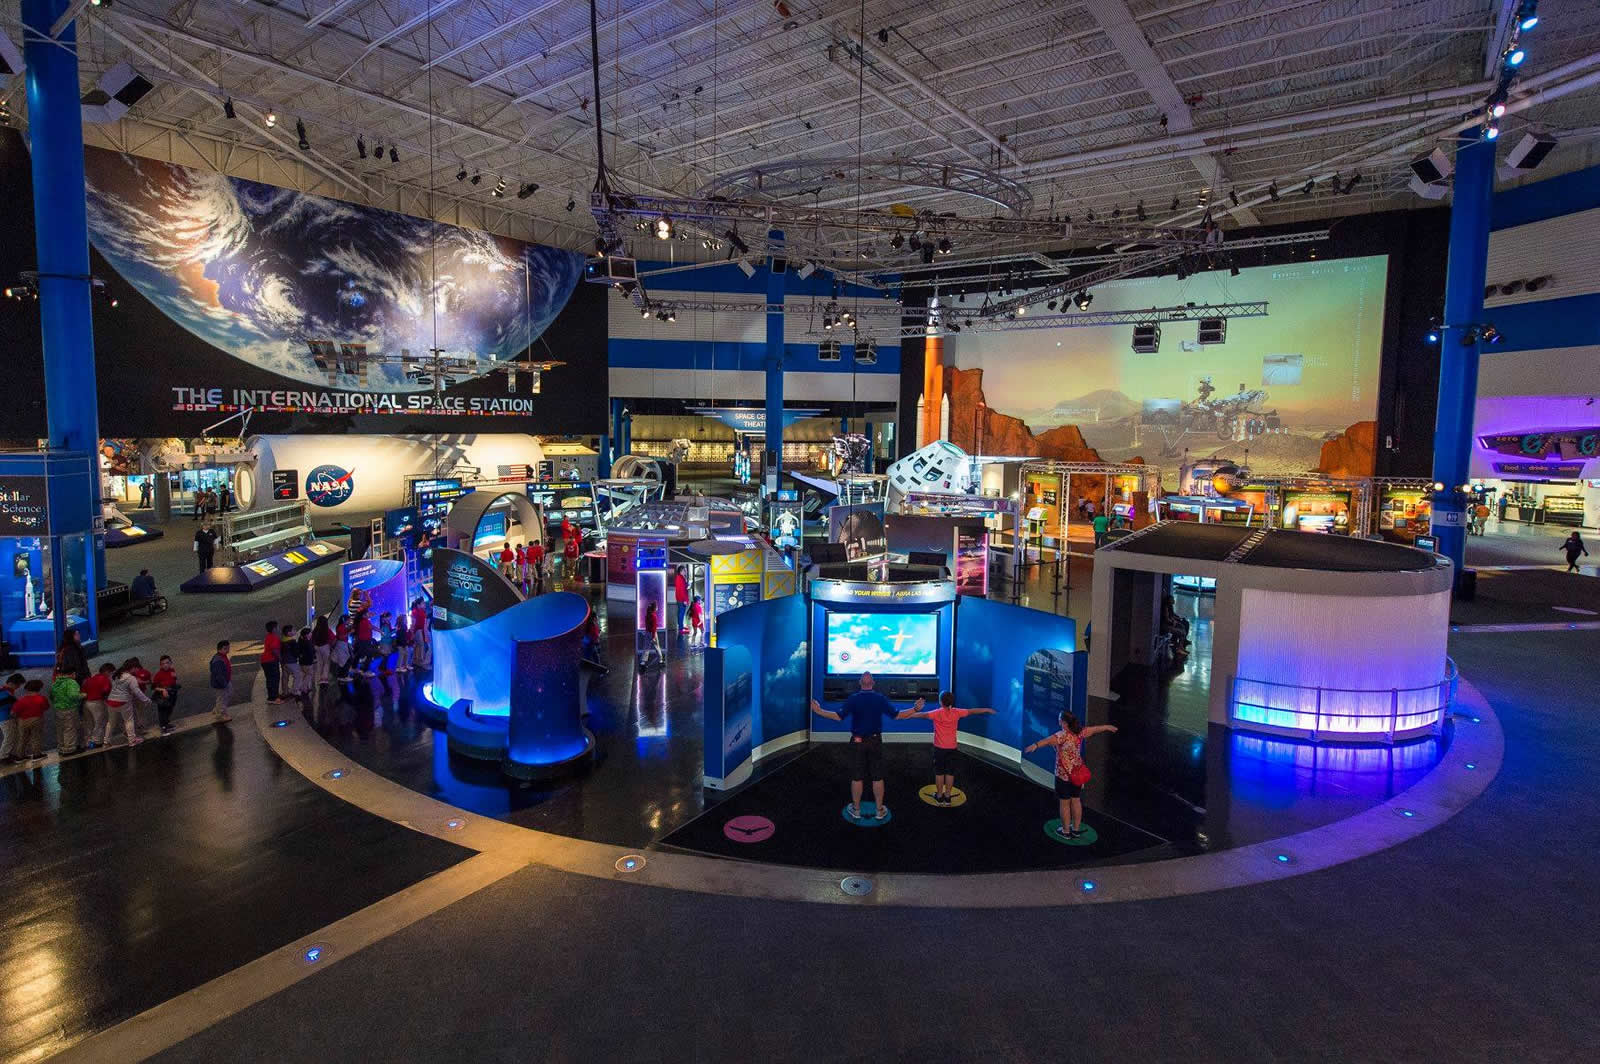 Coaching Decoration Space Center De Houston, Texas - Visitez Le Centre Spatial